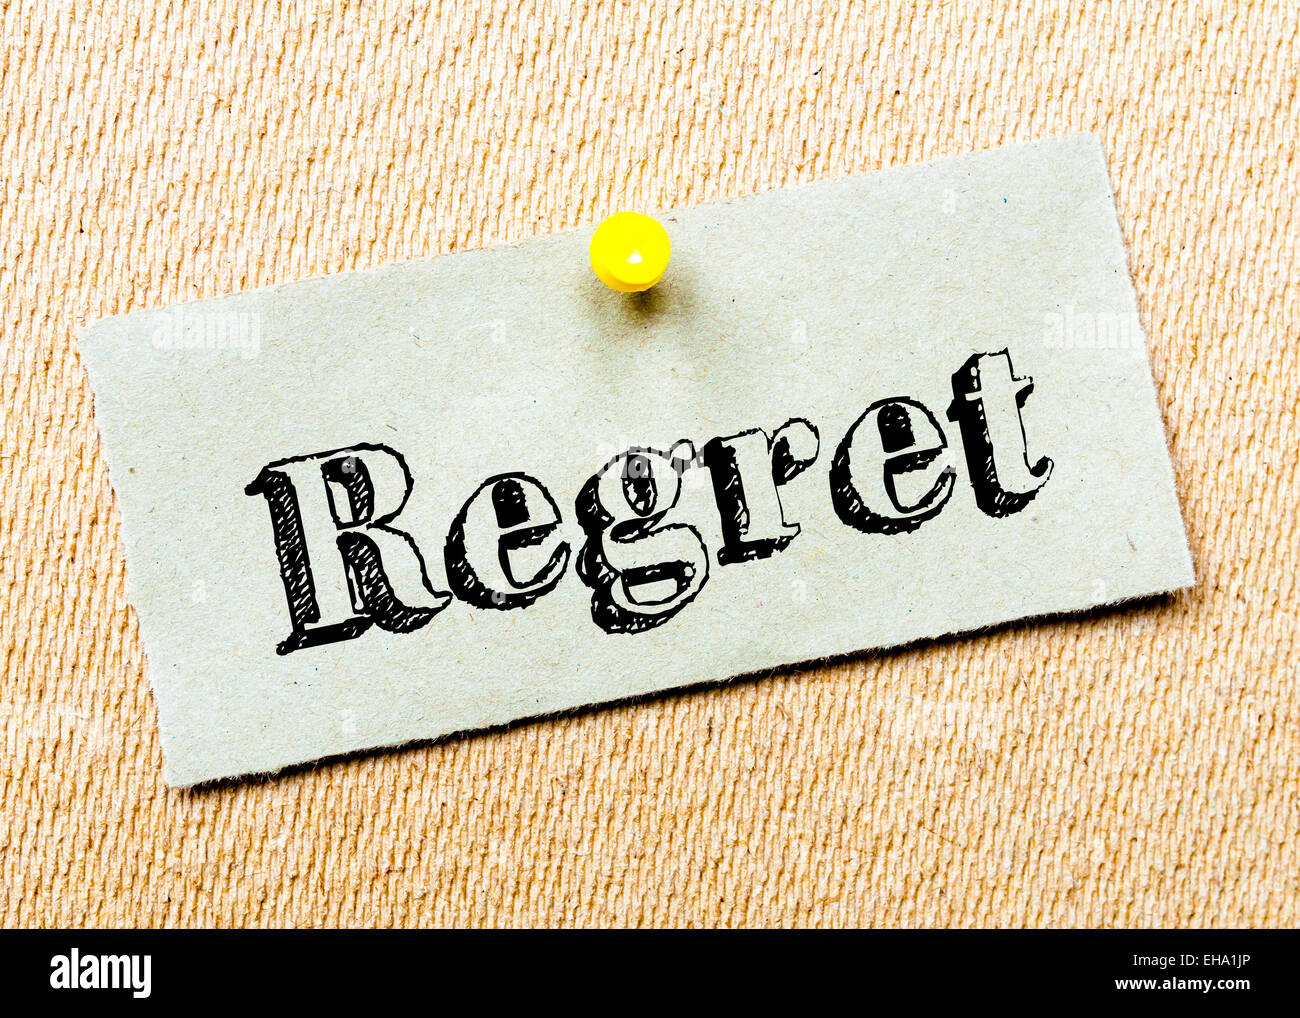 Recycled paper note pinned on cork board. Regret Message. Concept Image - Stock Image